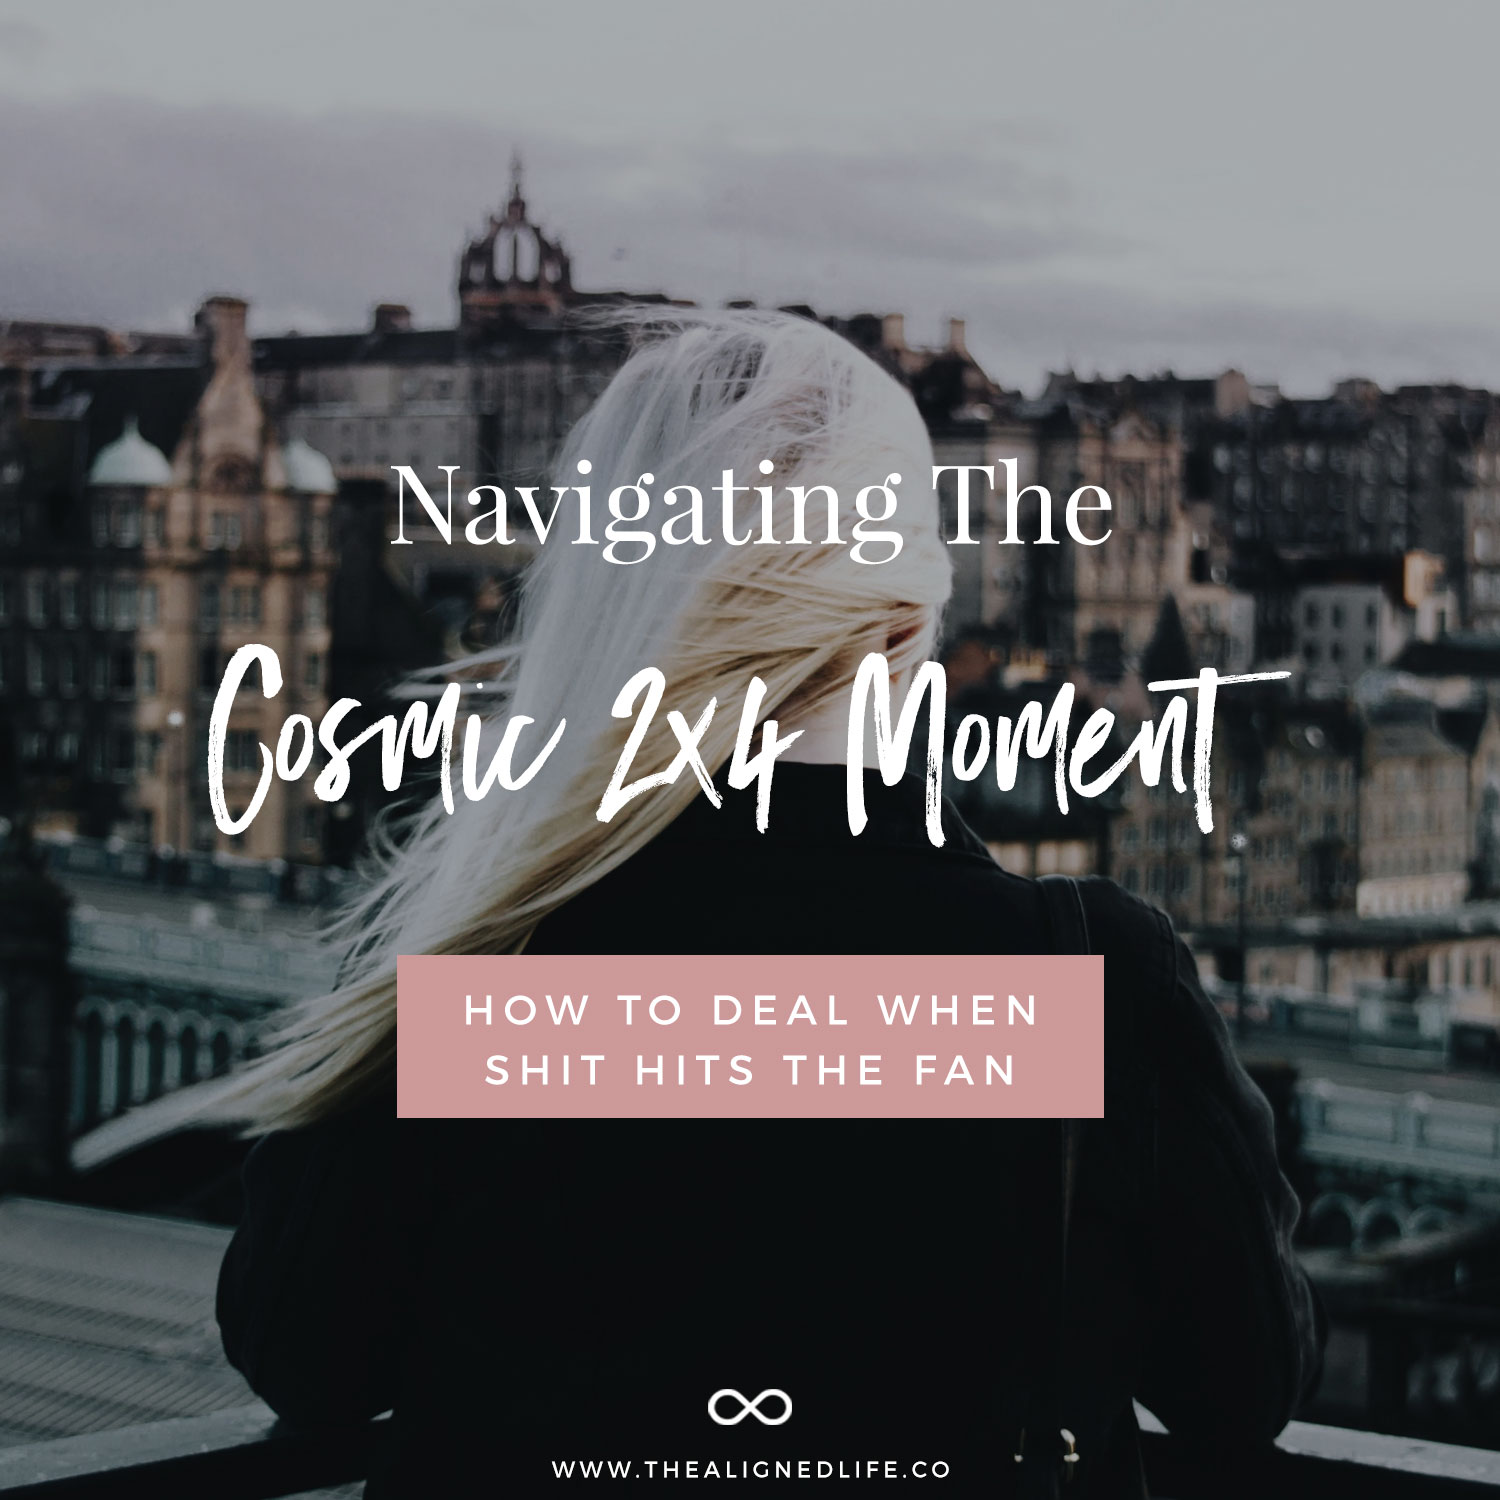 Navigating The Cosmic 2×4 Moment: How To Deal When Shit Hits The Fan